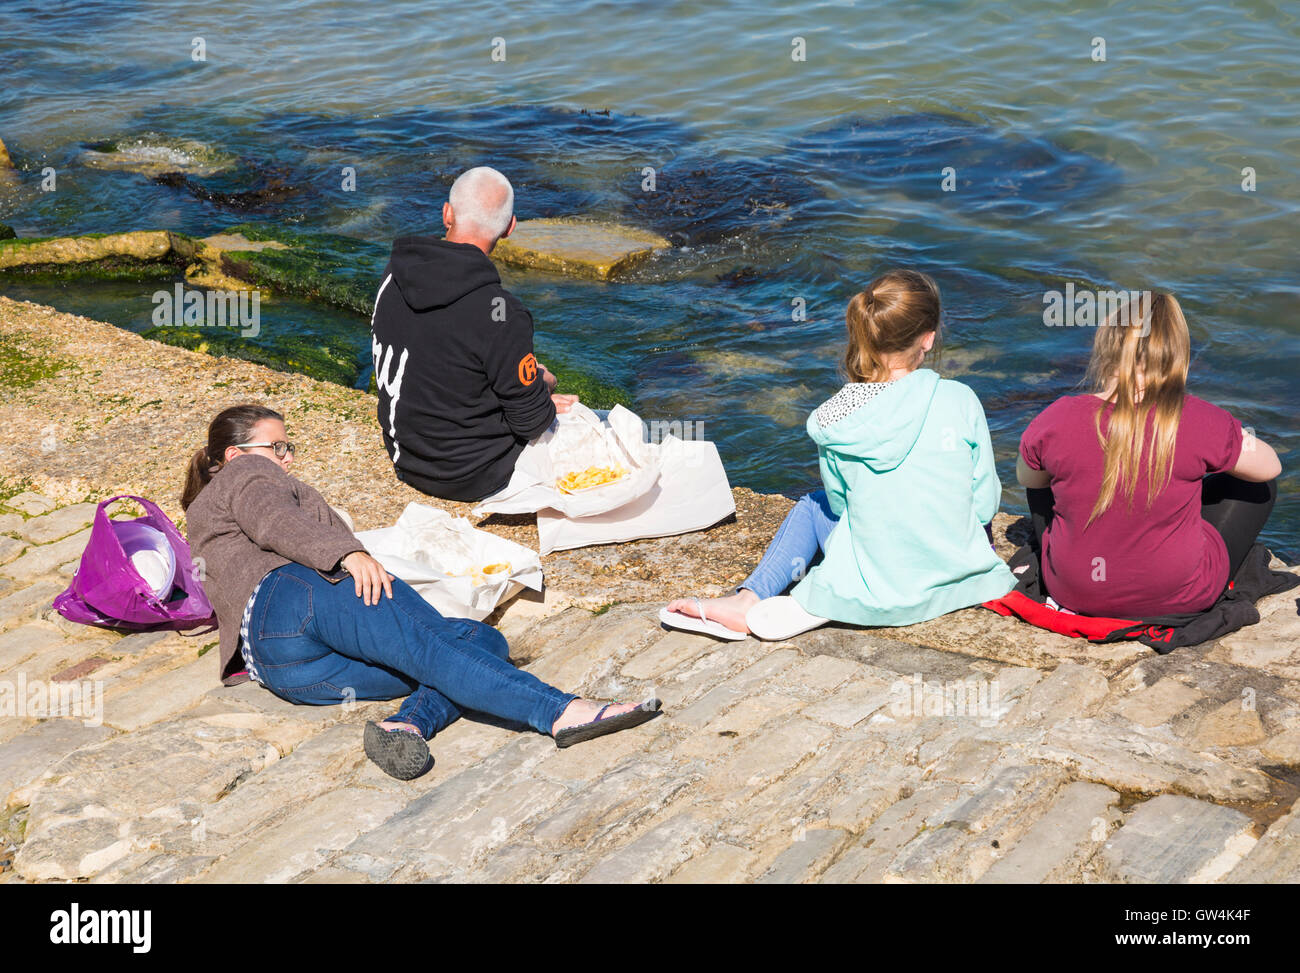 Swanage, Dorset, UK 11 September 2016. UK weather: glorious warm sunny day as visitors head for Swanage beach and - Stock Image